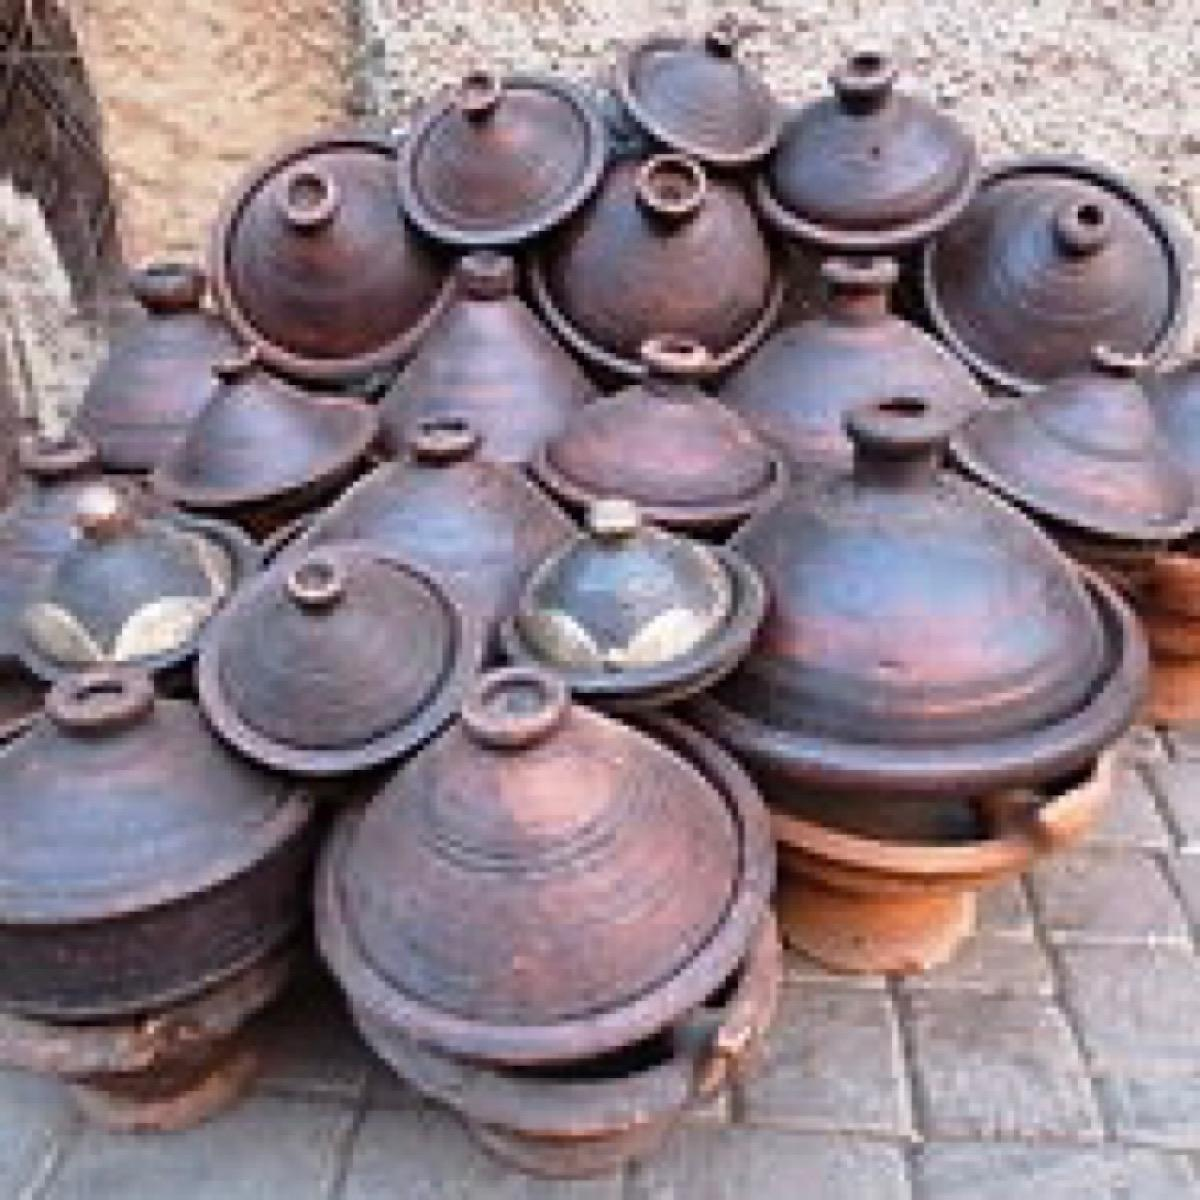 A pile of tagines on a street in Morocco